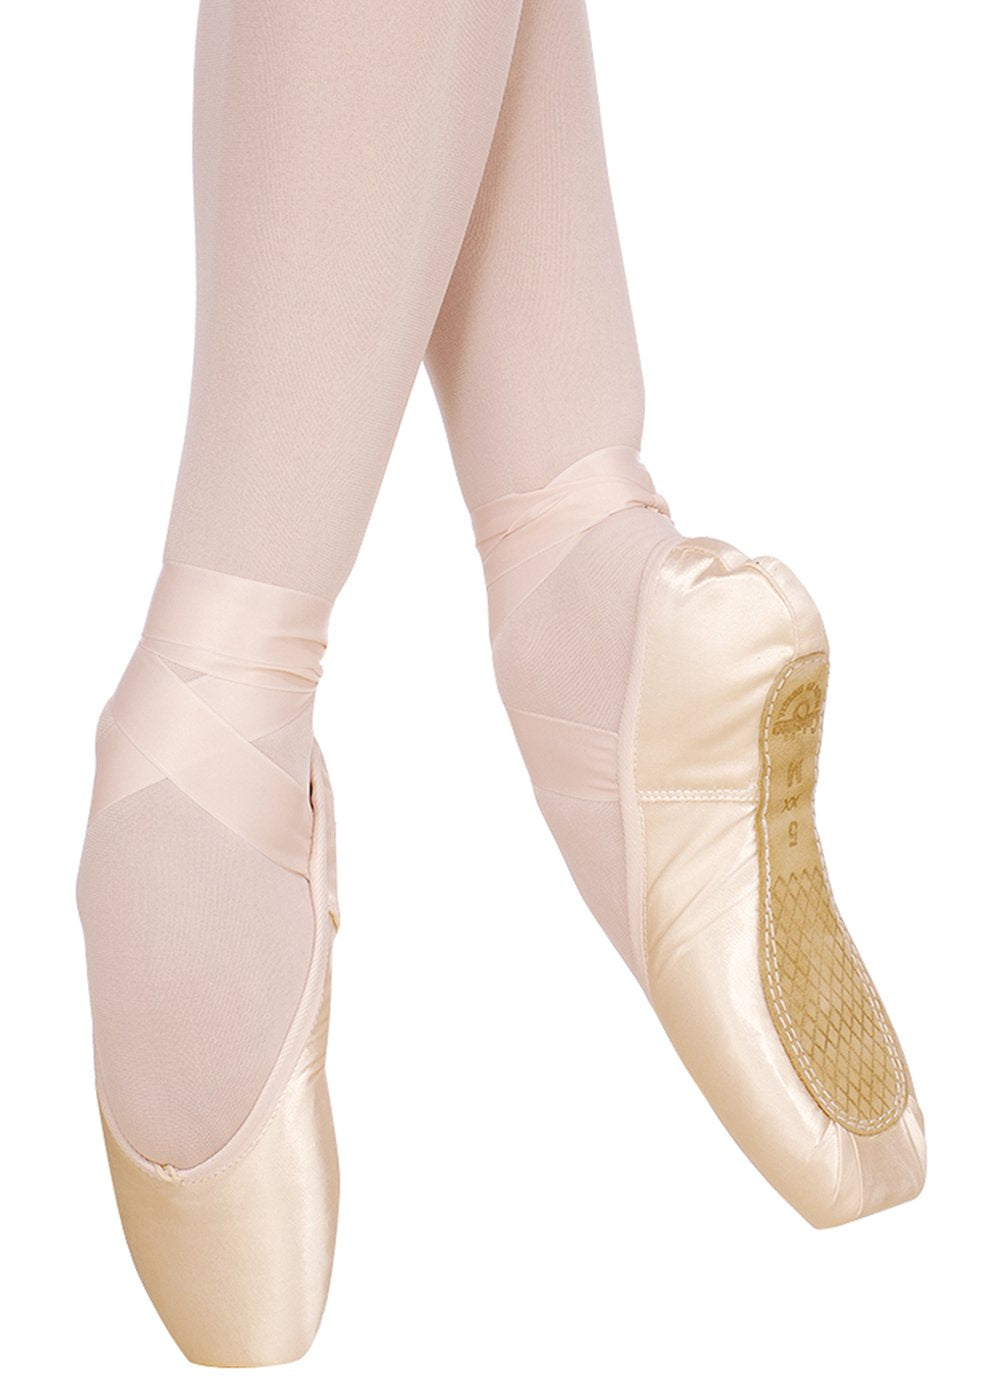 Grishko Pro Pointe Shoe - Medium  Shank